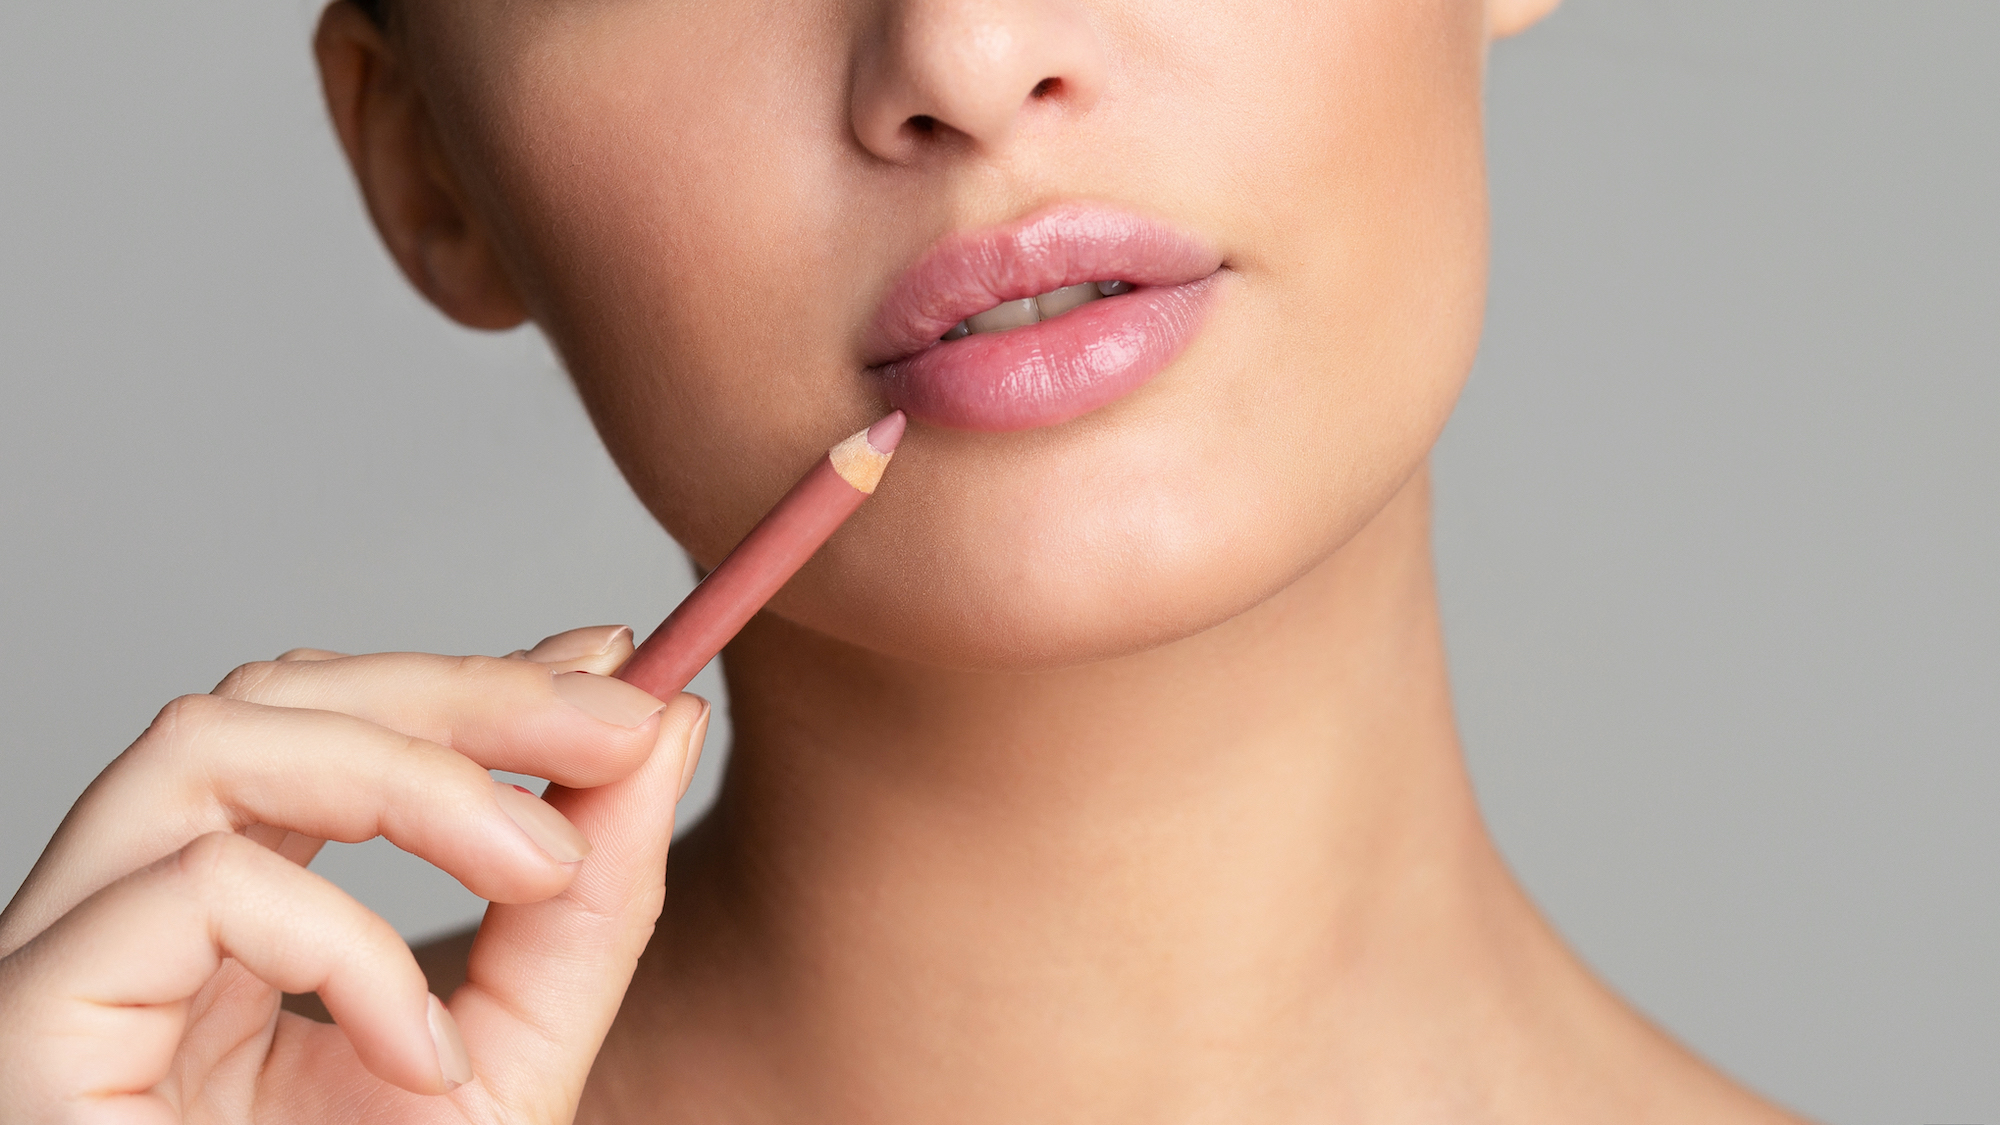 Beauty concept. Woman drawing lips with nude pink lipliner over grey background, crop